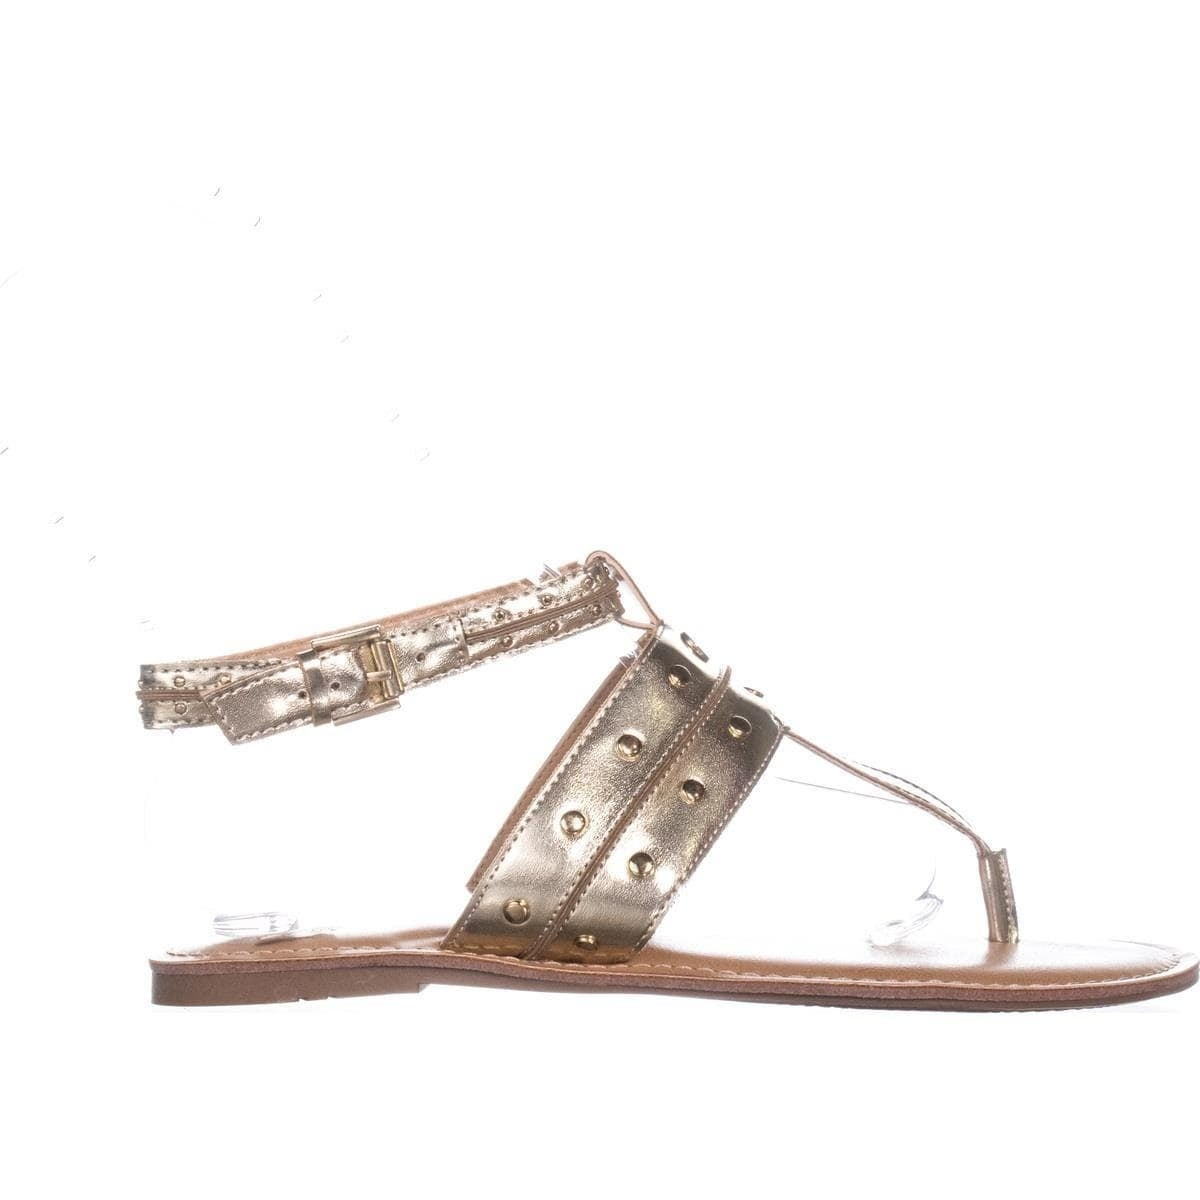 ebaeac143 Shop tommy hilfiger womens linnea open toe casual ankle strap sandals free  shipping today jpg 1200x1200